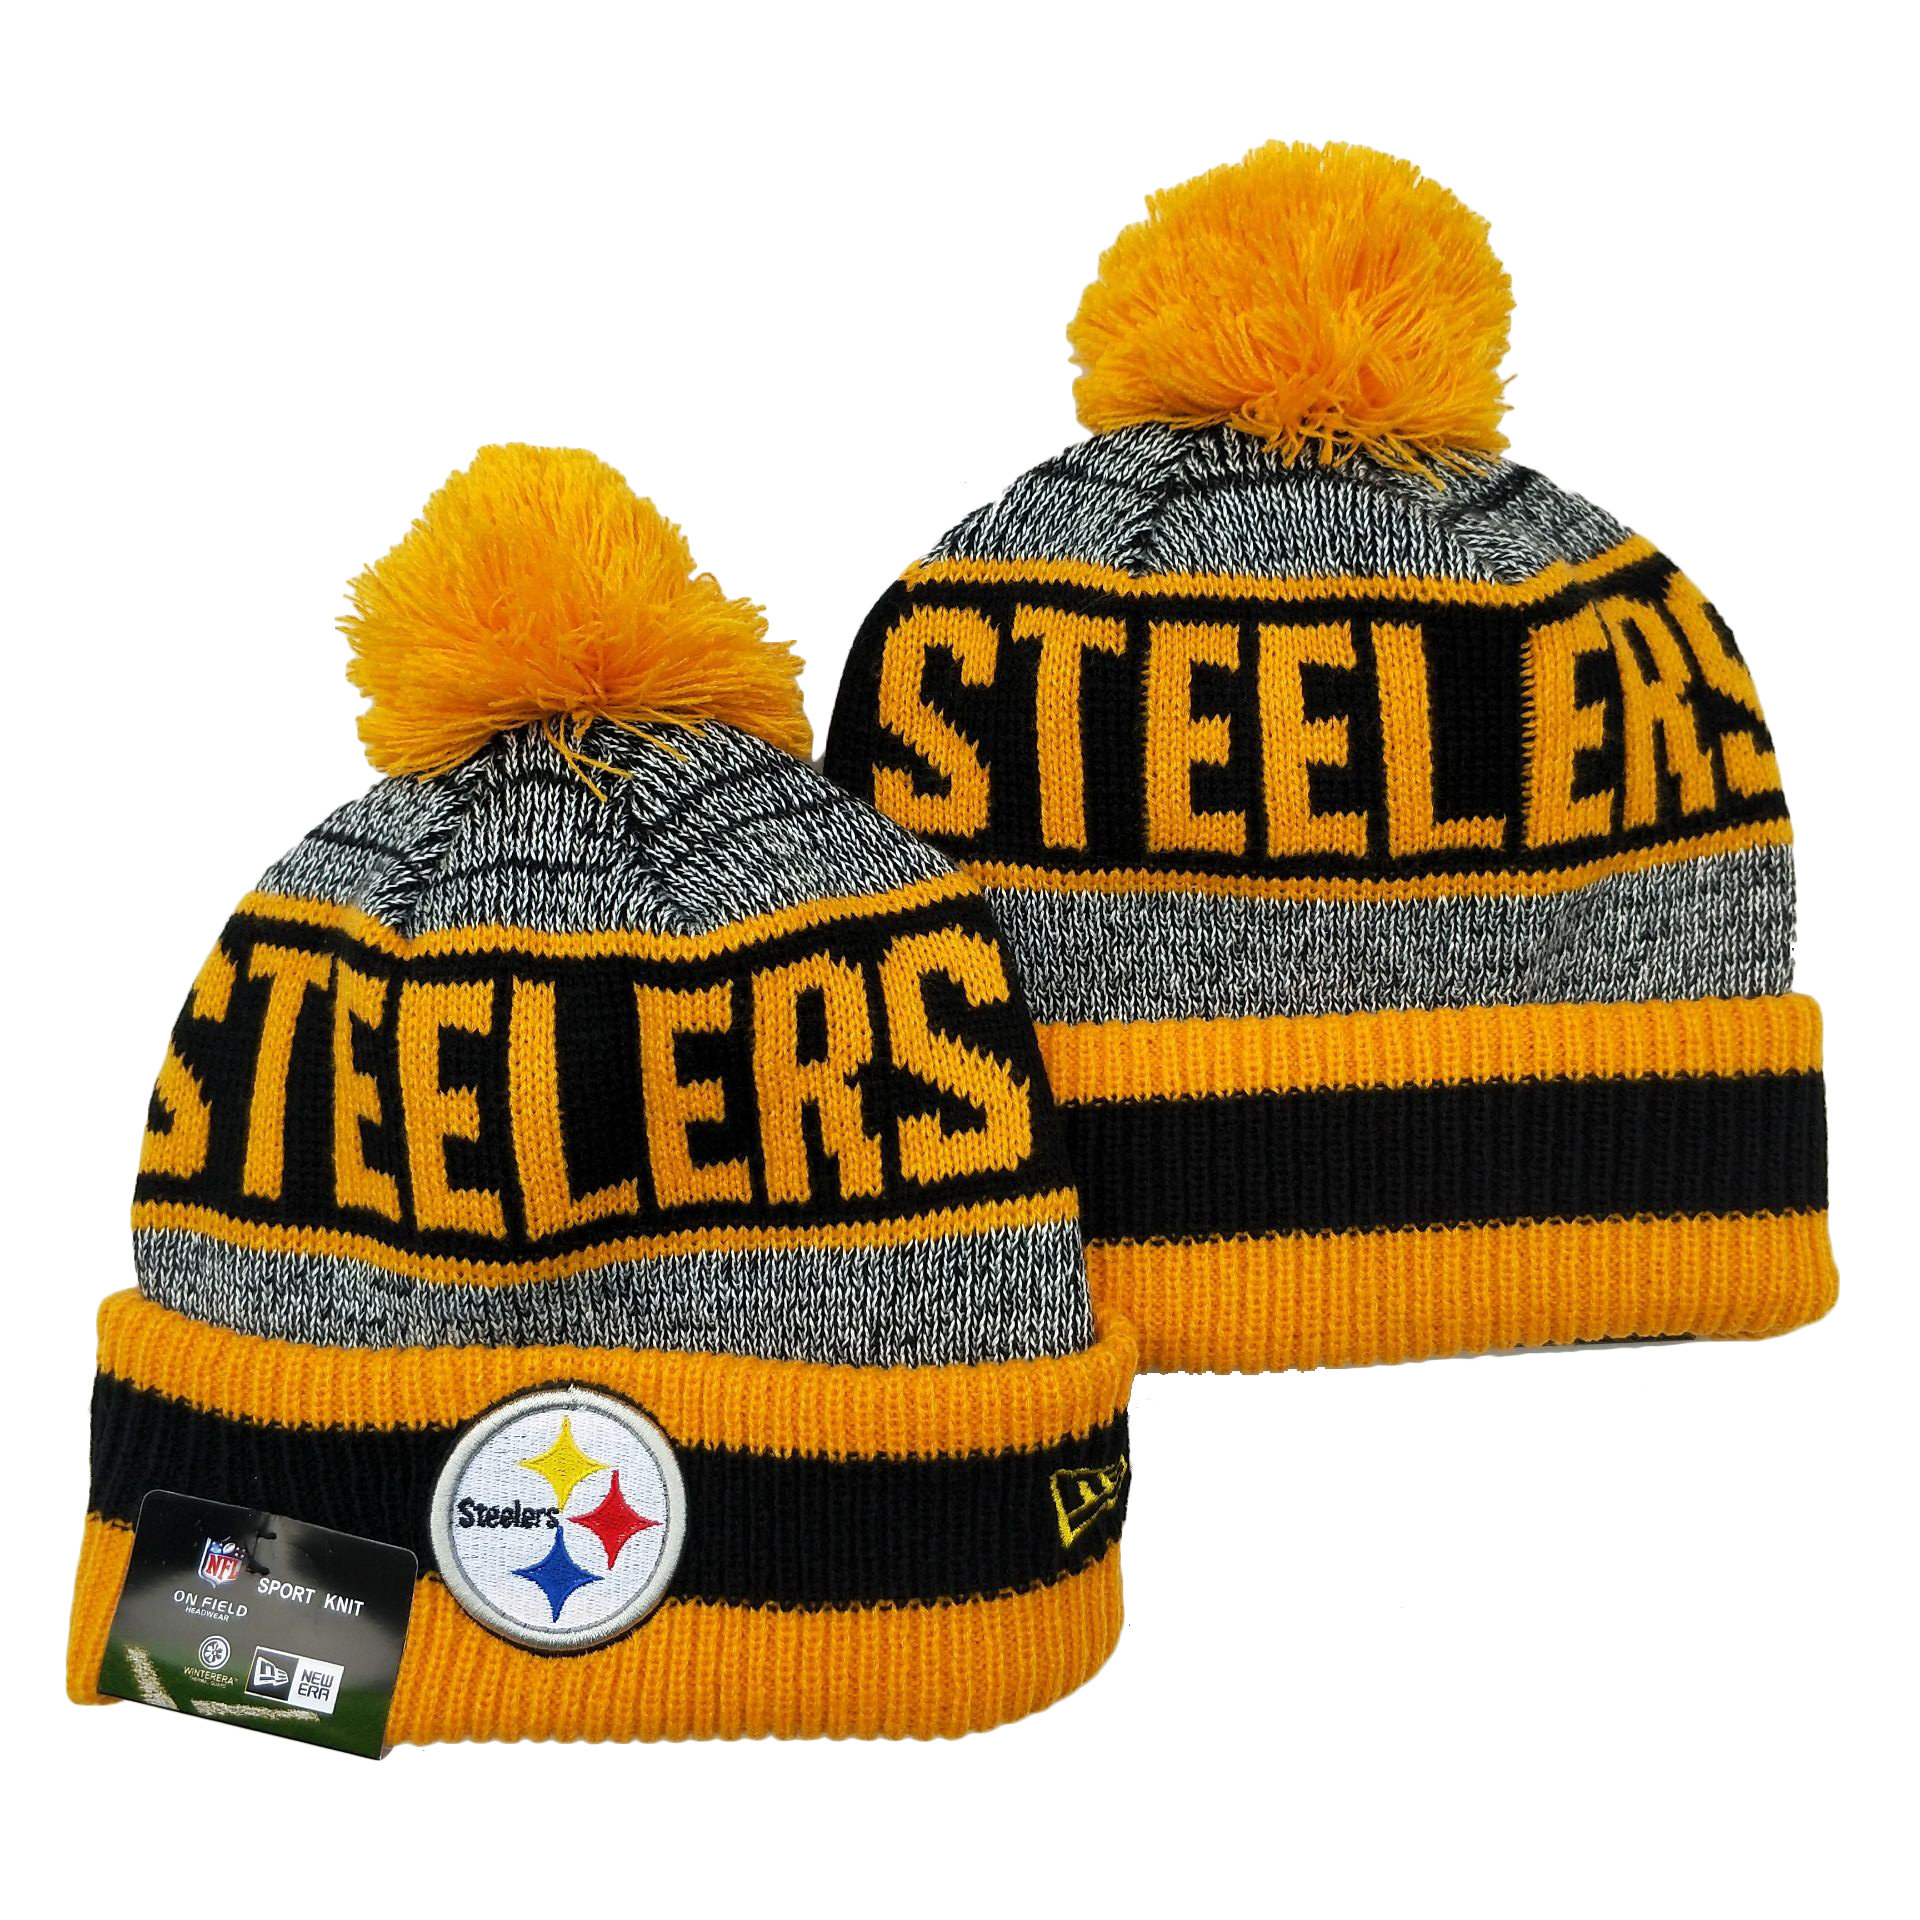 Steelers Team Logo Yellow Pom Cuffed Knit Hat YD